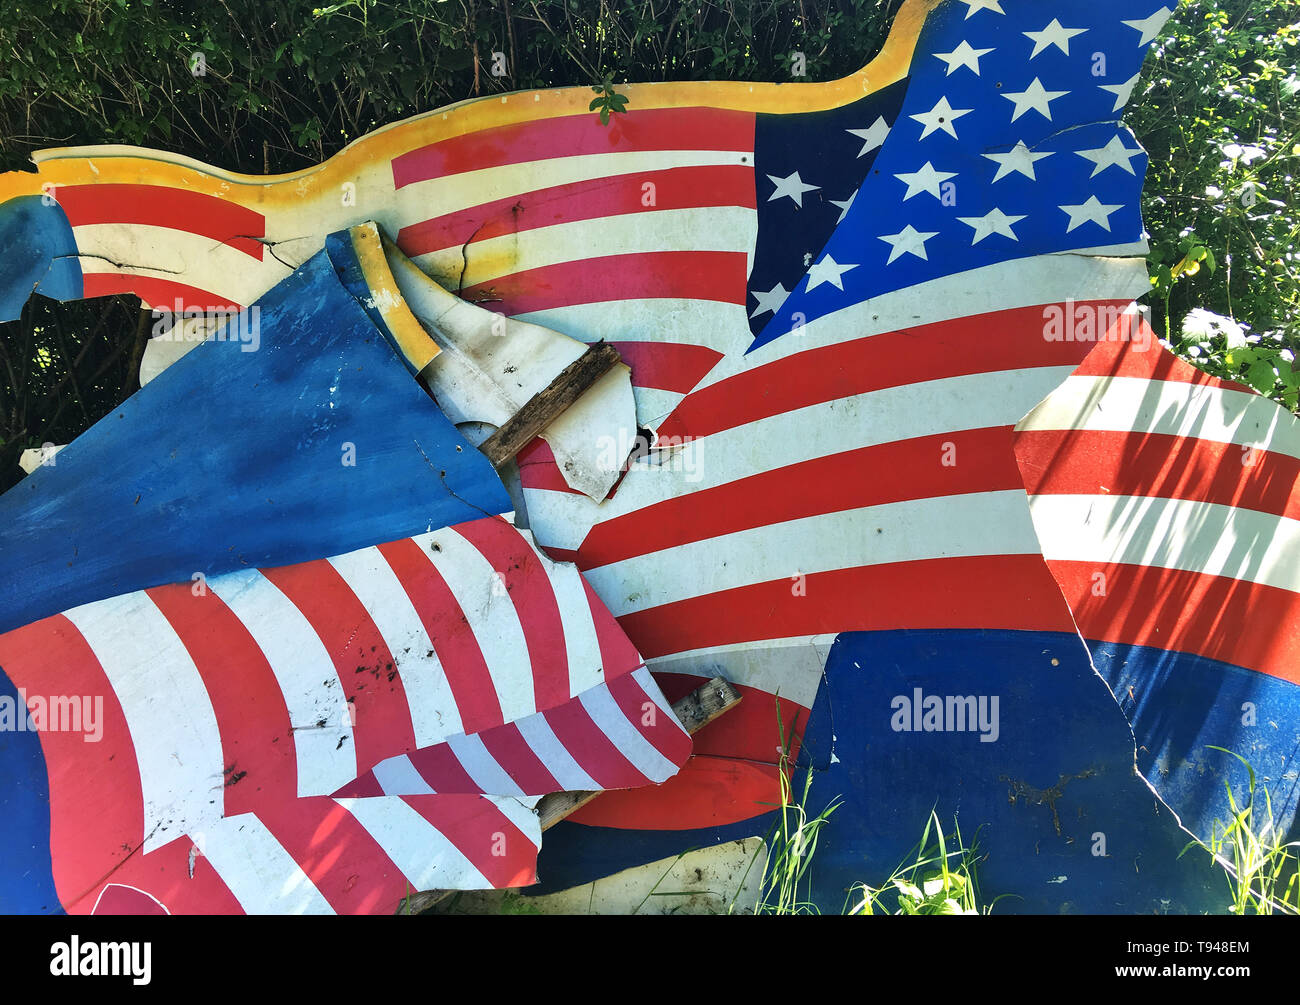 Broken flag, demolished background cardboard with American flag 'Stars and Stripes' as motive, disposed at the roadside. - Stock Image